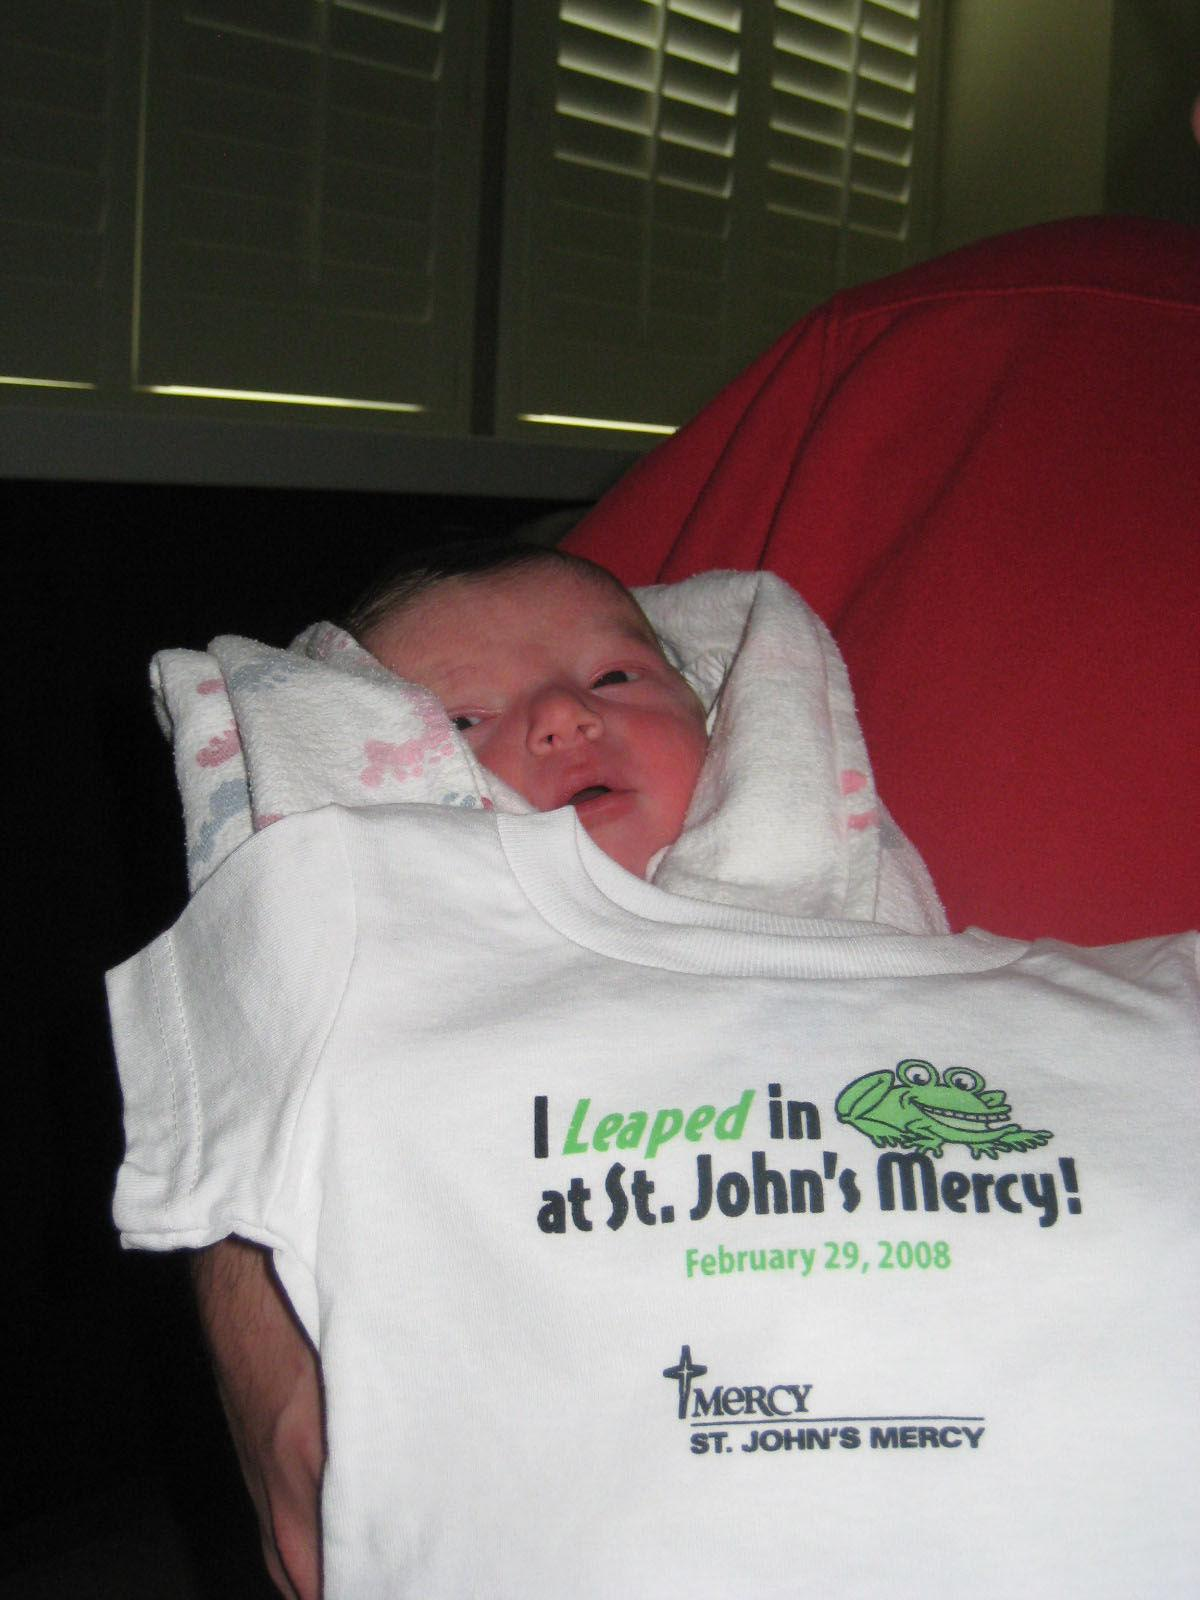 When Alex Pekny Was Born On Leap Day 2008 Staff At St Johns Mercy In Louis Gave Him A T Shirt To Commemorate The Event